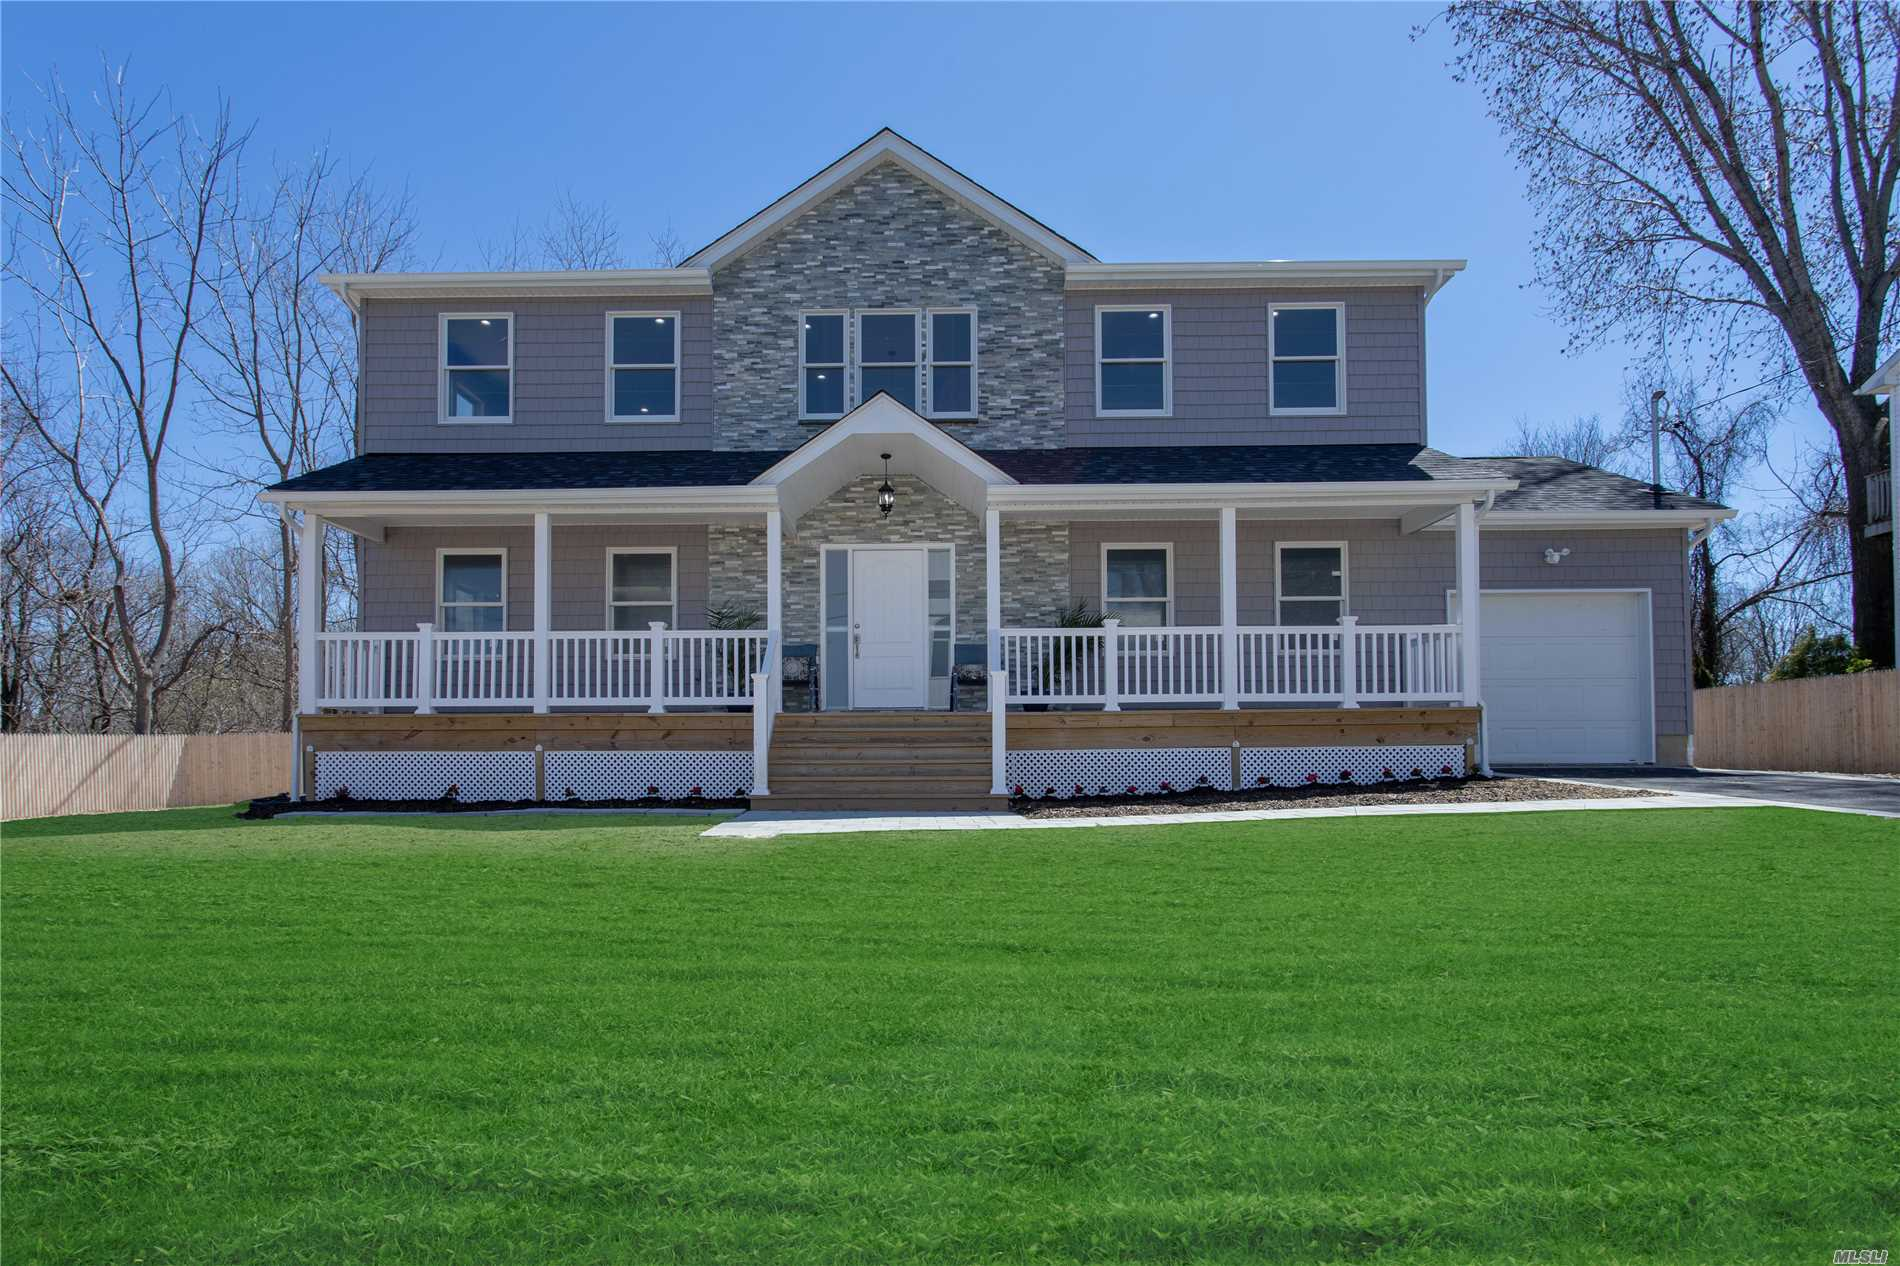 Absolutely Stunning New Construction, Boasting A Gracious Open Floor Plan, High End Finishes, Gorgeous Hardwood Floors Throughout, 4 Spacious Bedrooms & 2.5 Baths, Scenic Waterview, Just 1000 Ft From Waters Edge! Stunning White Center Island Kitchen With Quartz Counter Tops, Stainless Appliances & Pretty Backsplash. First floor media/5th bedroom plumb for 4th bath Elegant Master Bedroom With Spa-Like Master Bath, Situated On .25 Acre In The Kings Park School District. Backs Park Great Privacy!